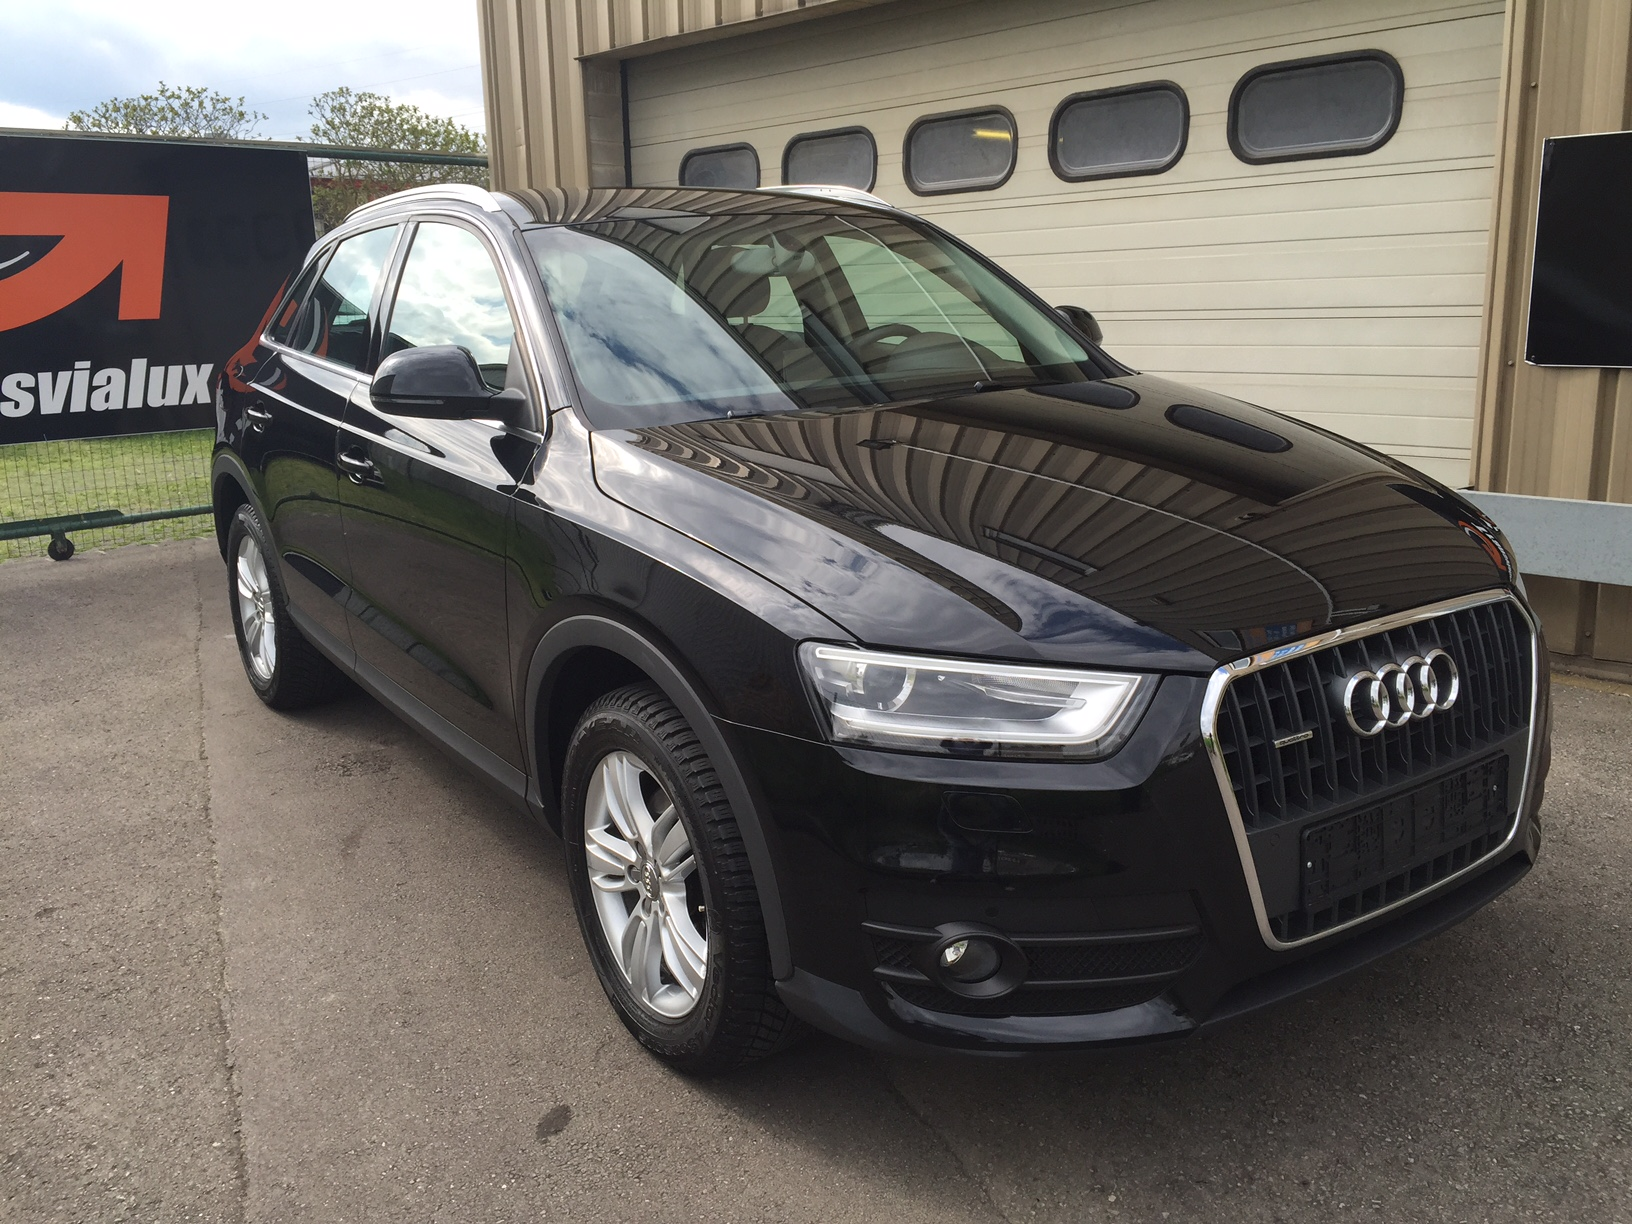 audi q3 2 0 tdi 177 ambition luxe quattro s tronic 7. Black Bedroom Furniture Sets. Home Design Ideas